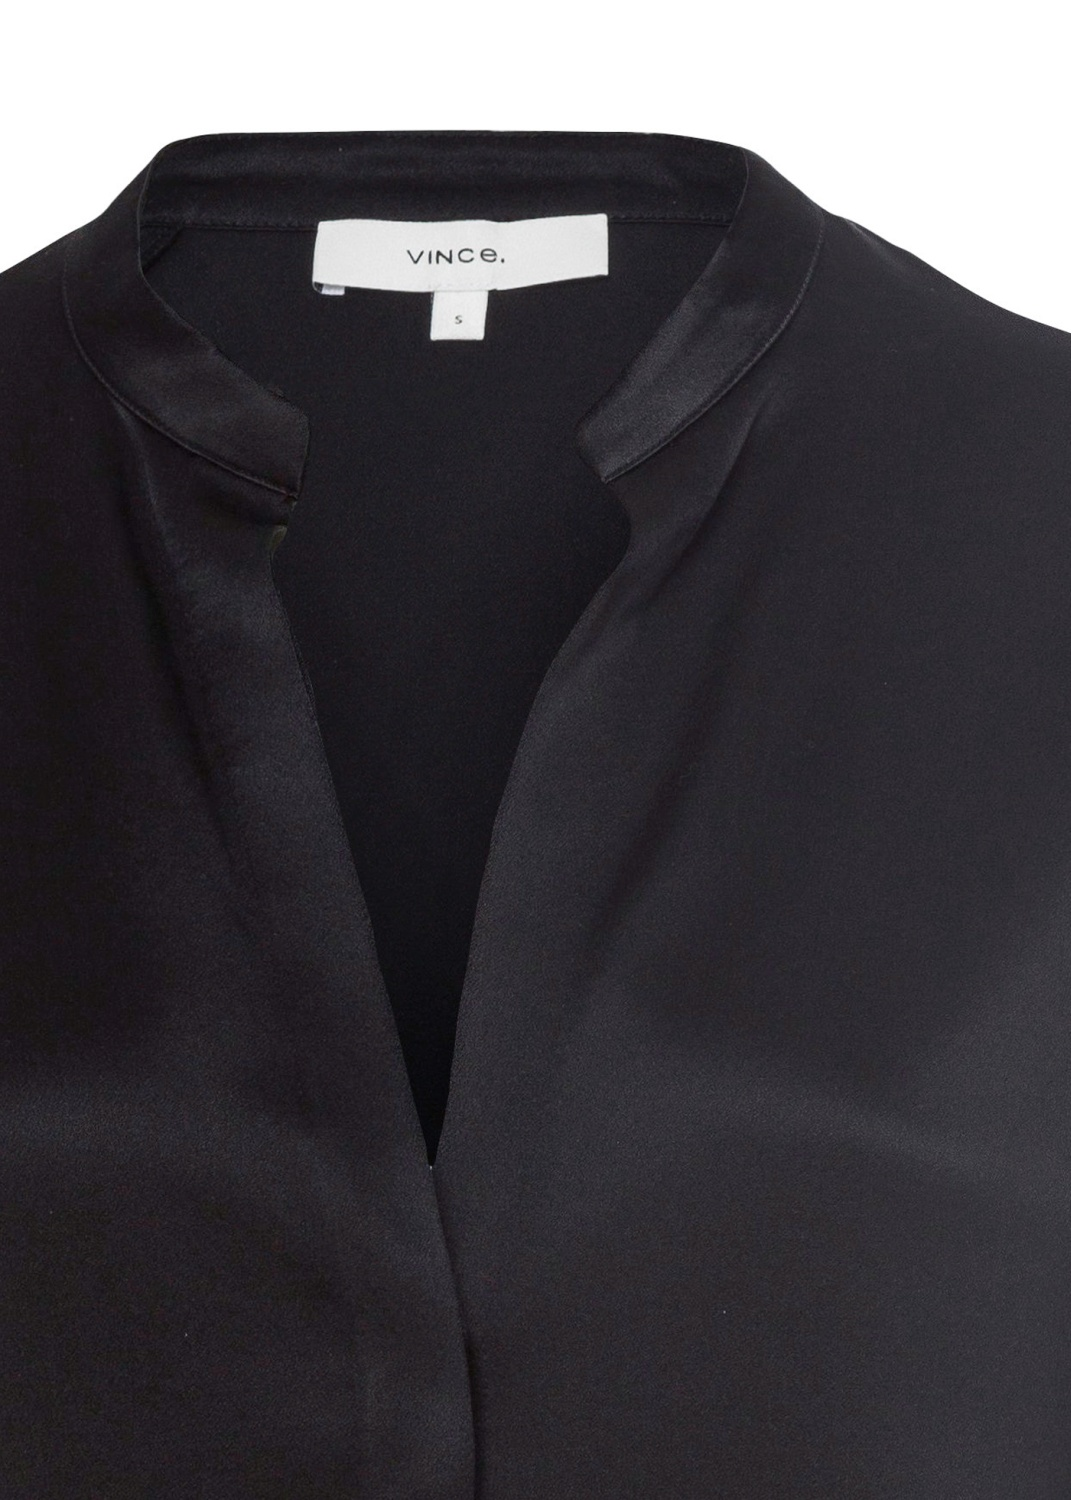 BAND COLLAR BLOUSE / BAND COLLAR BLOUSE image number 2